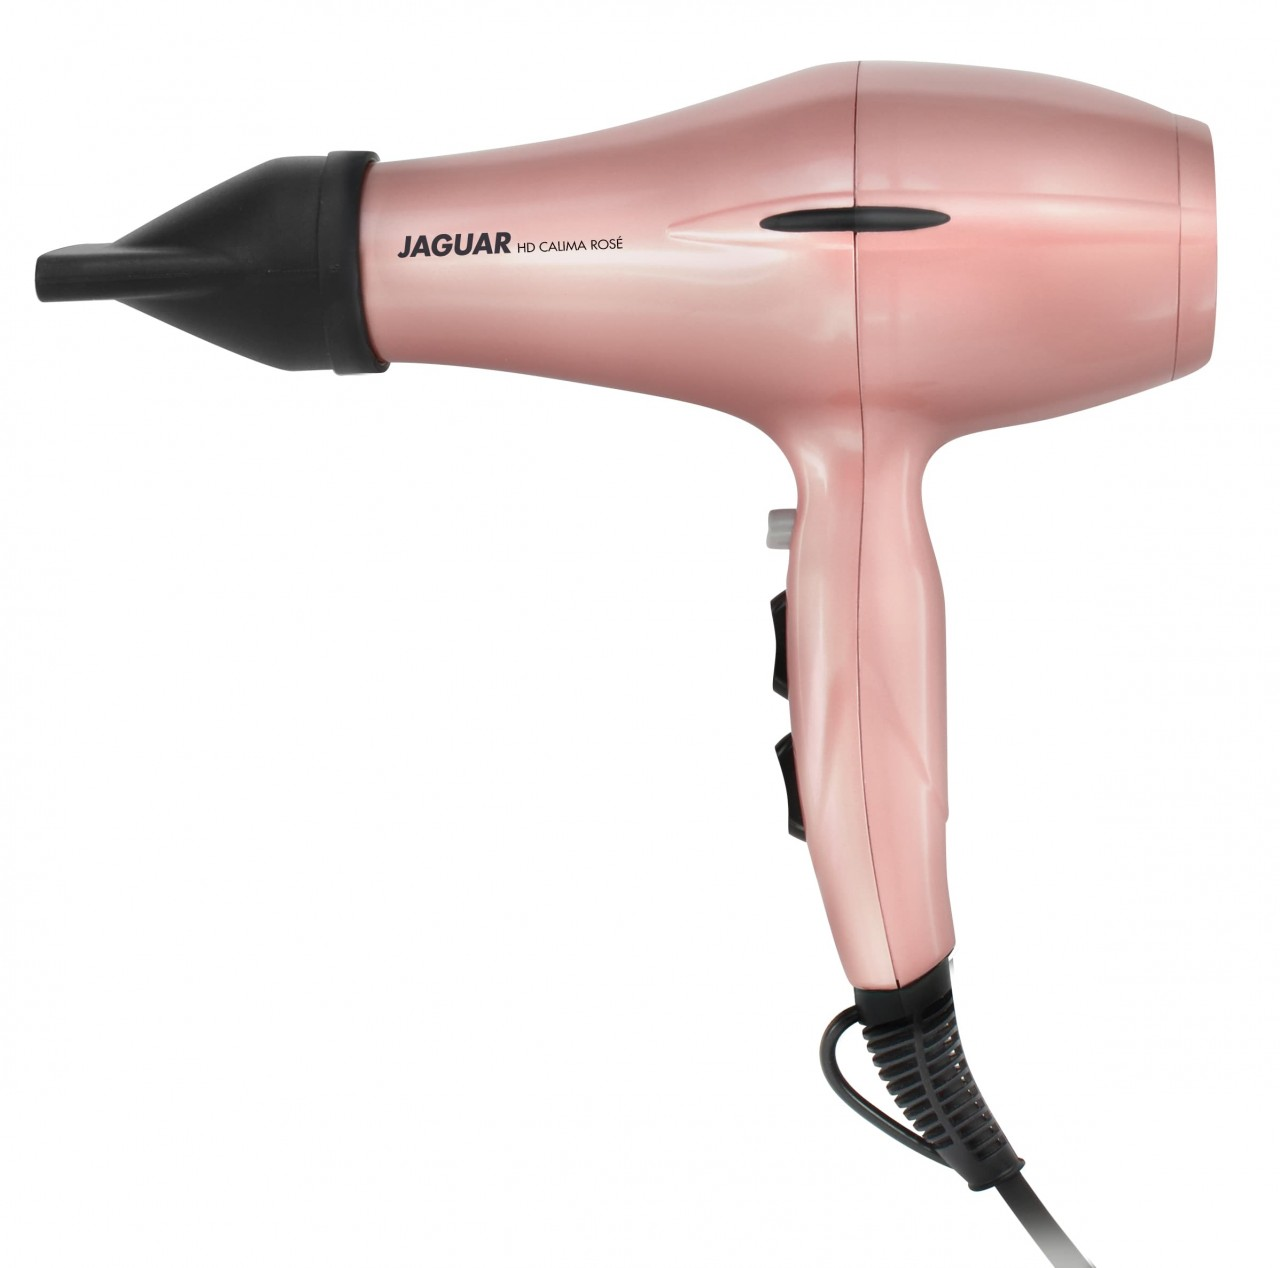 Hair Dryer JAGUAR HD CALIMA ROSÉ